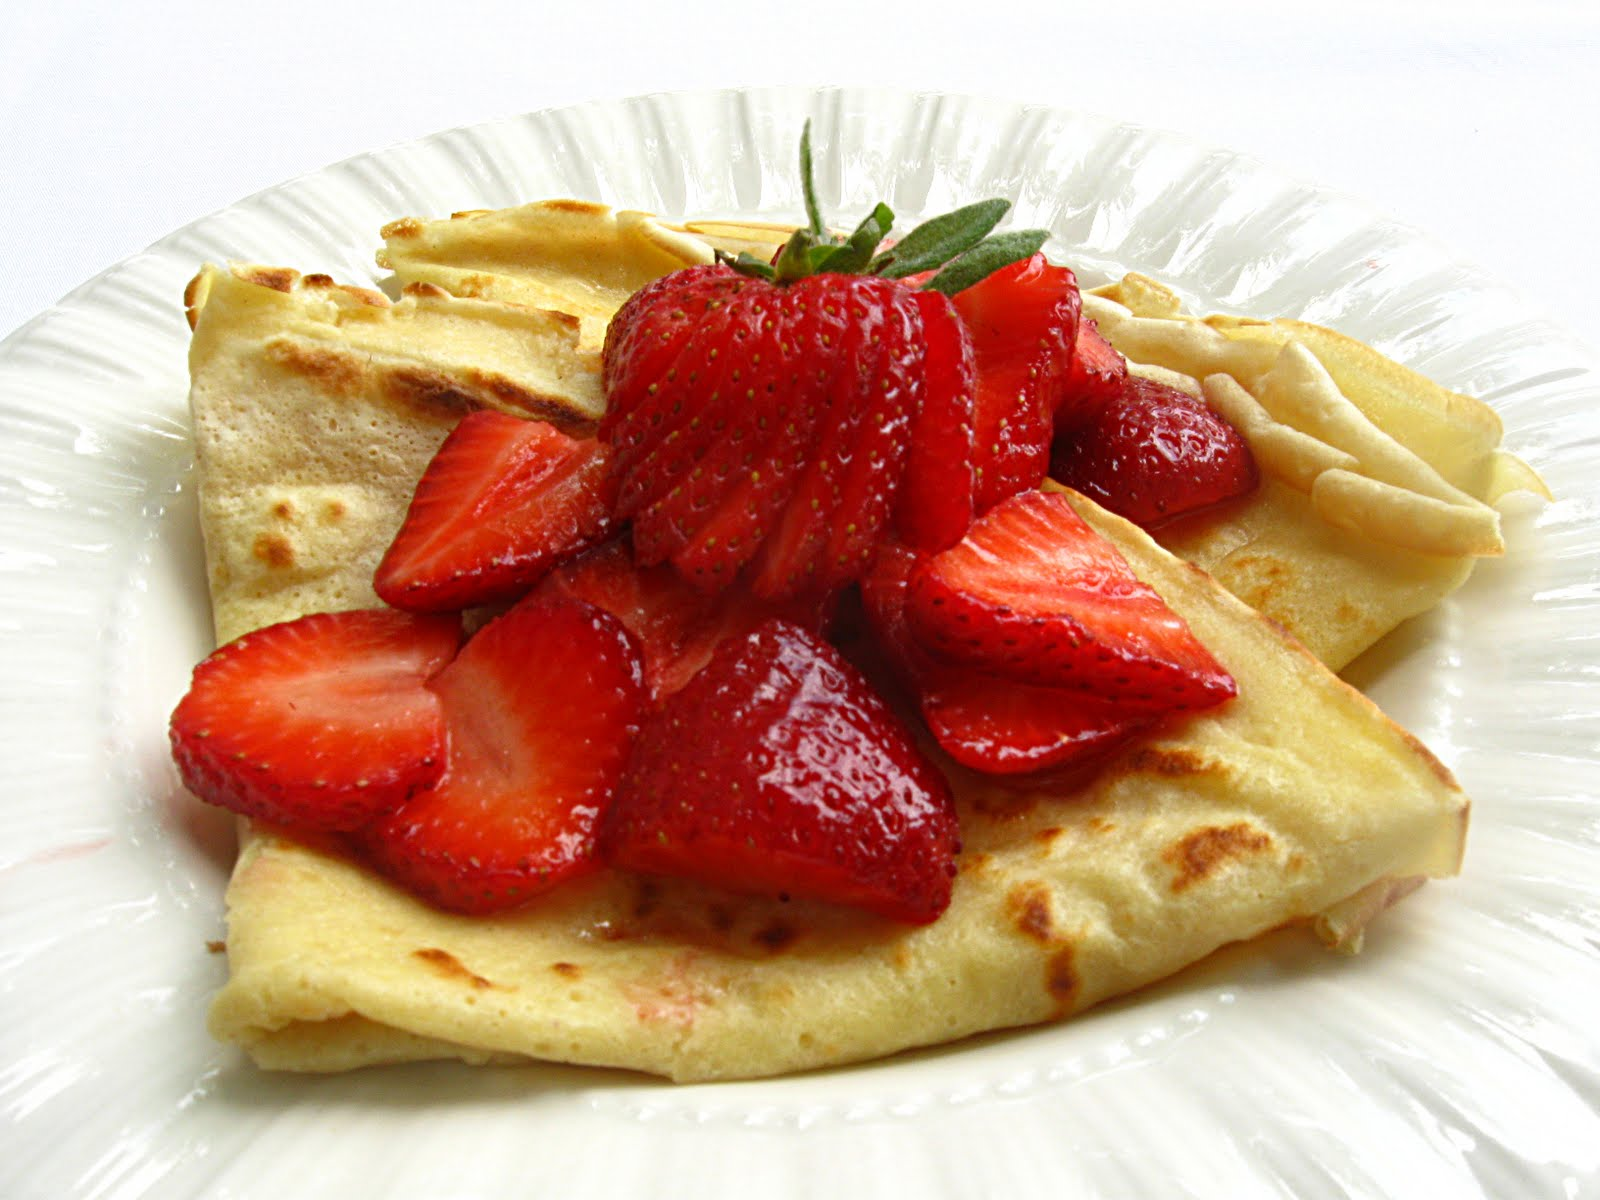 All That Splatters: Saturday Blog Showcase #17 - Strawberry Crepes